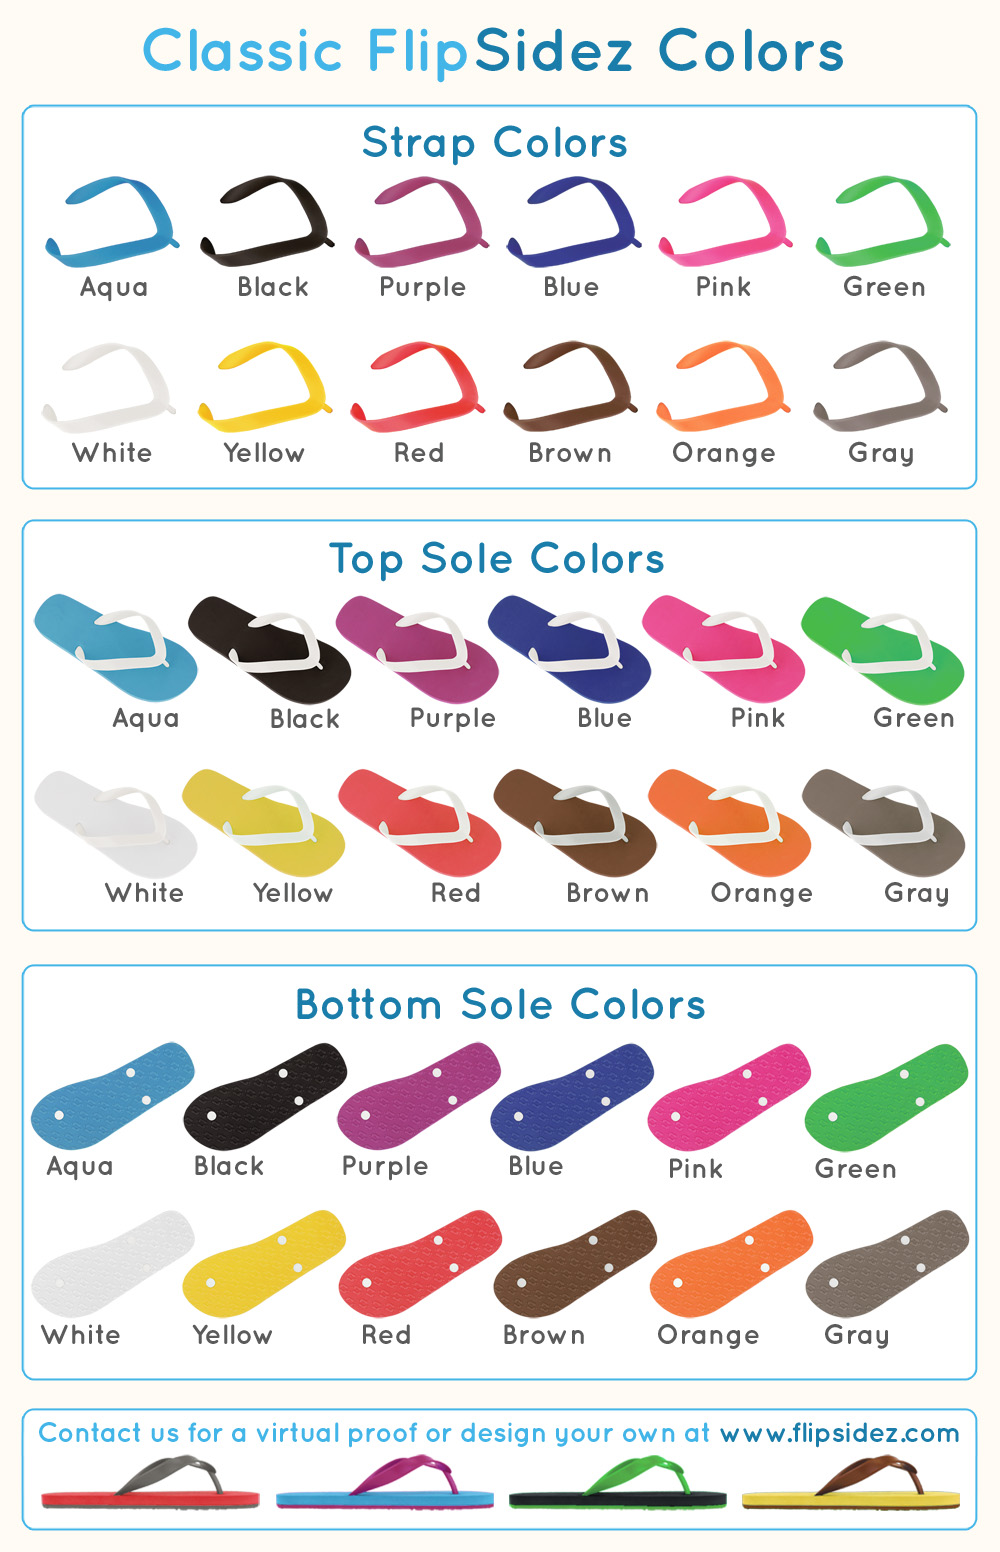 Classic FlipSidez Full Color Chart3 small